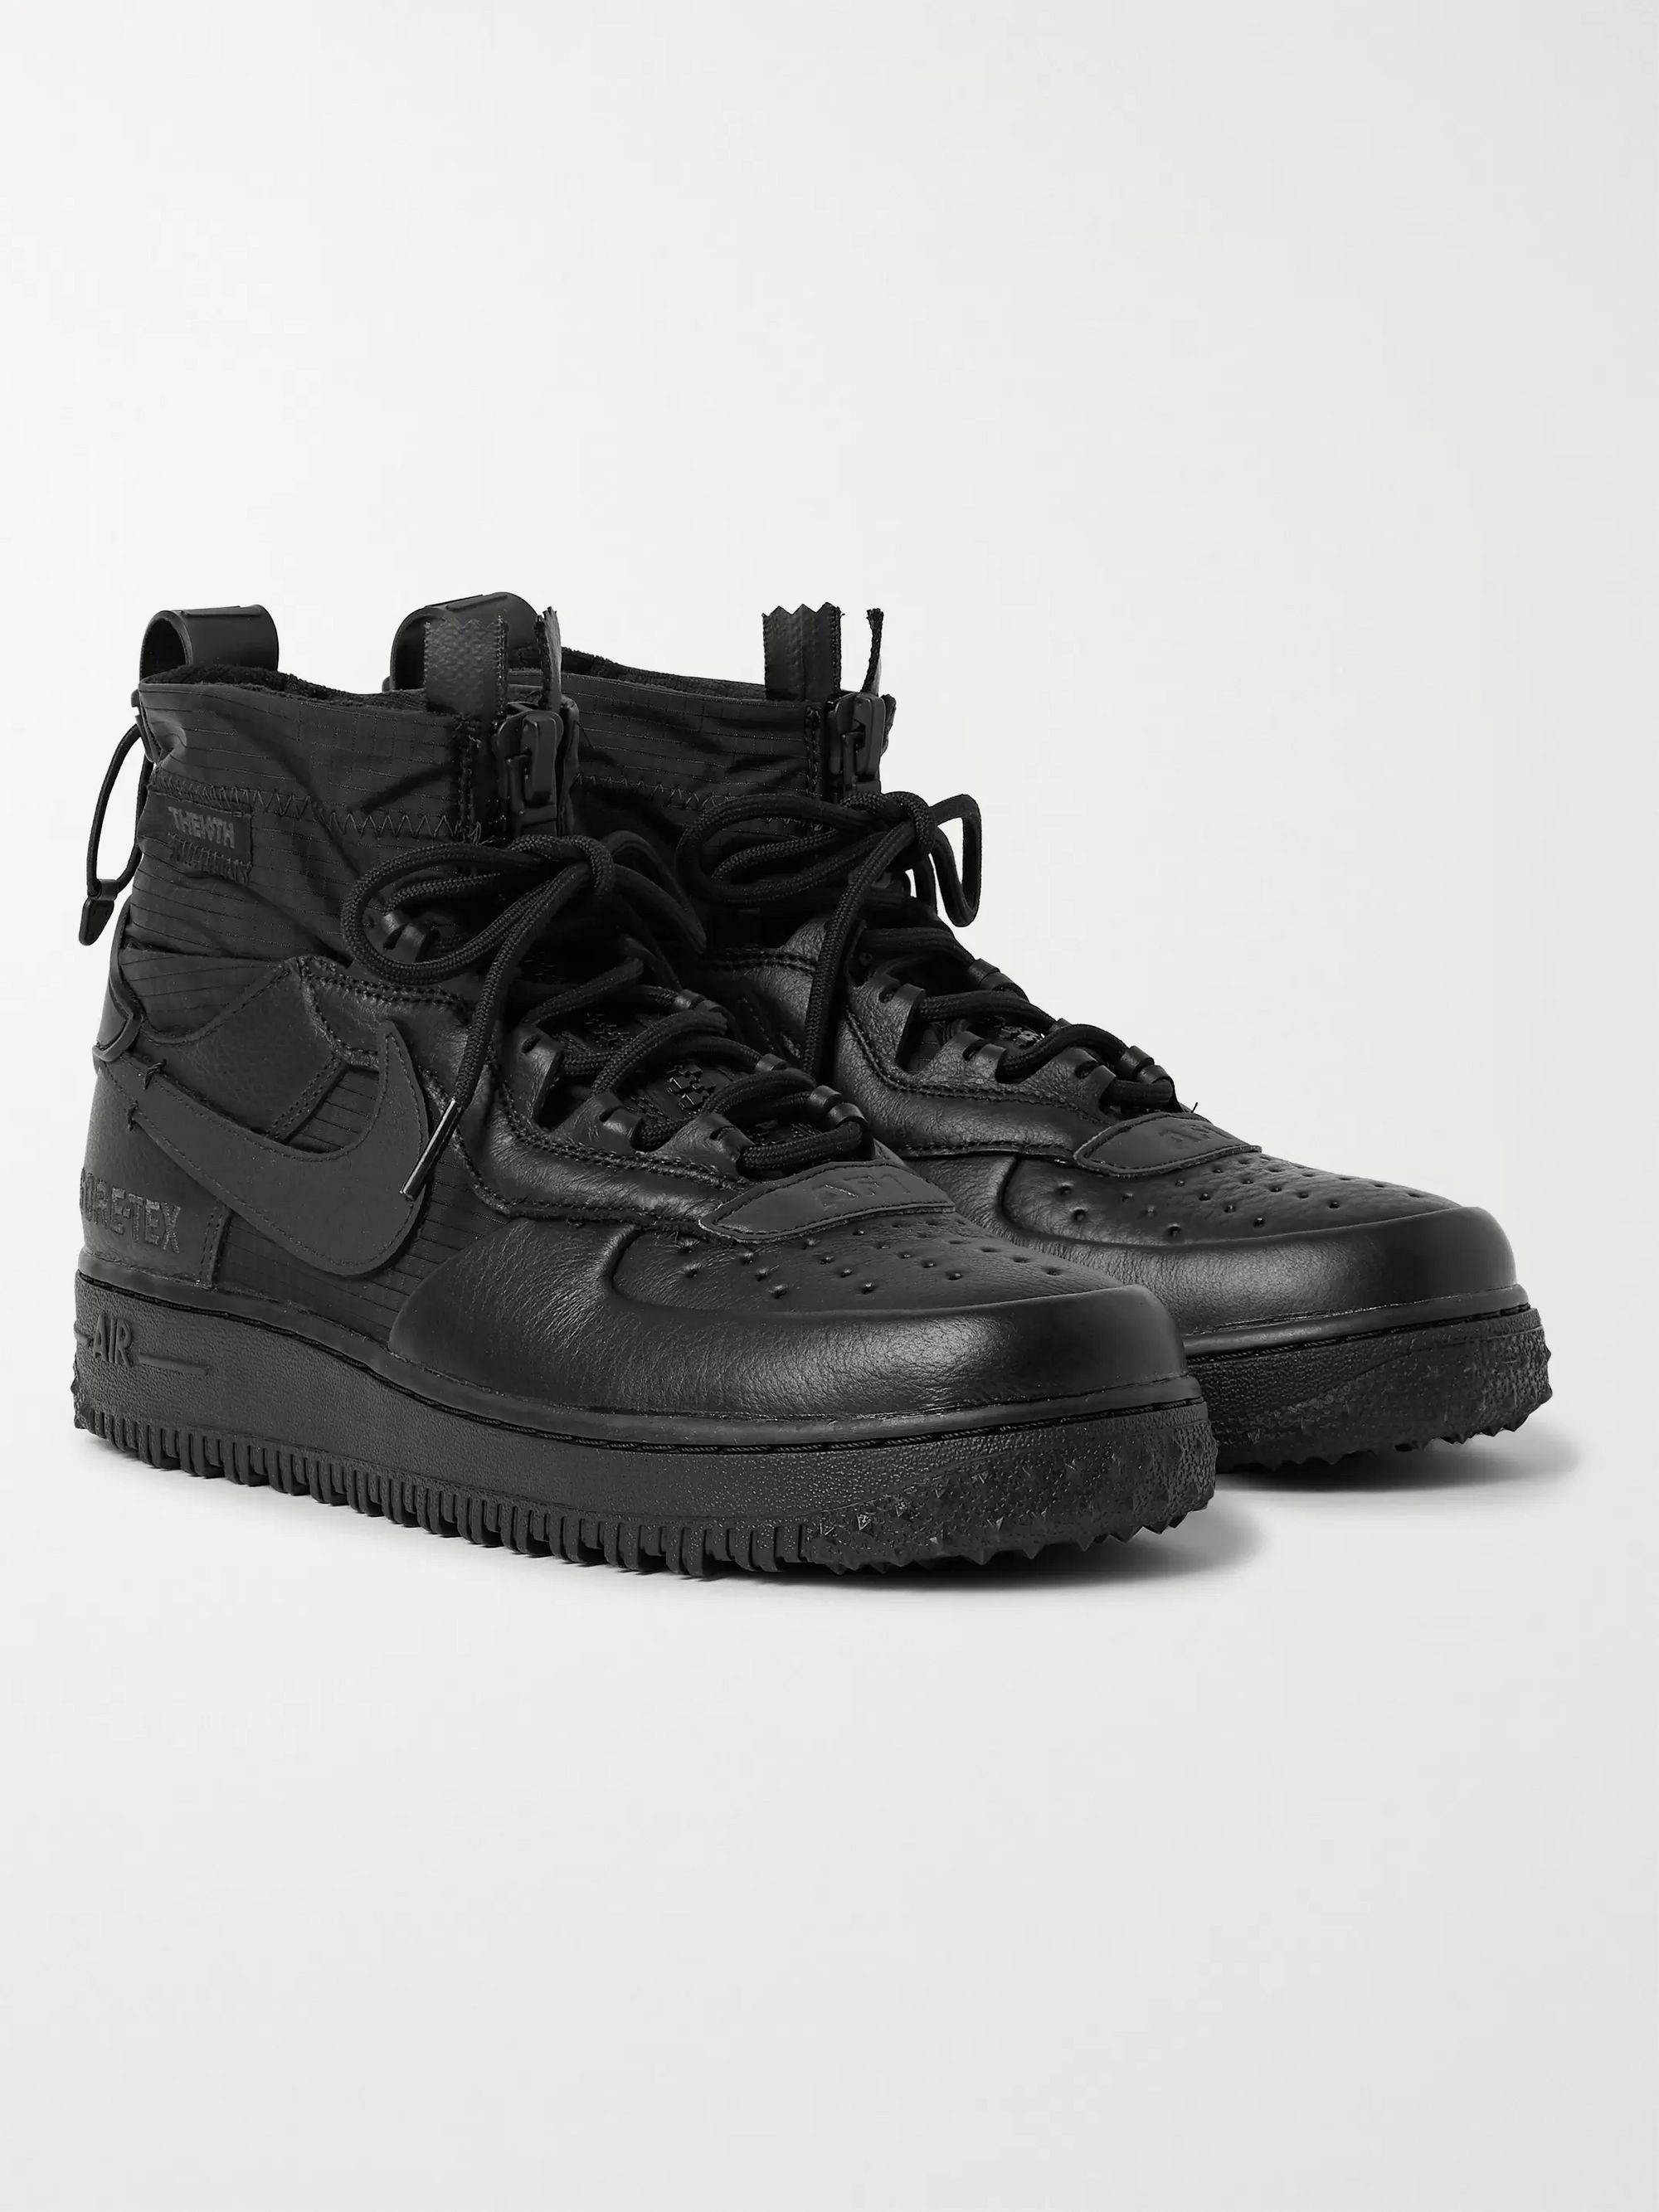 Air Force 1 Winter GORE TEX and Leather High Top Sneakers